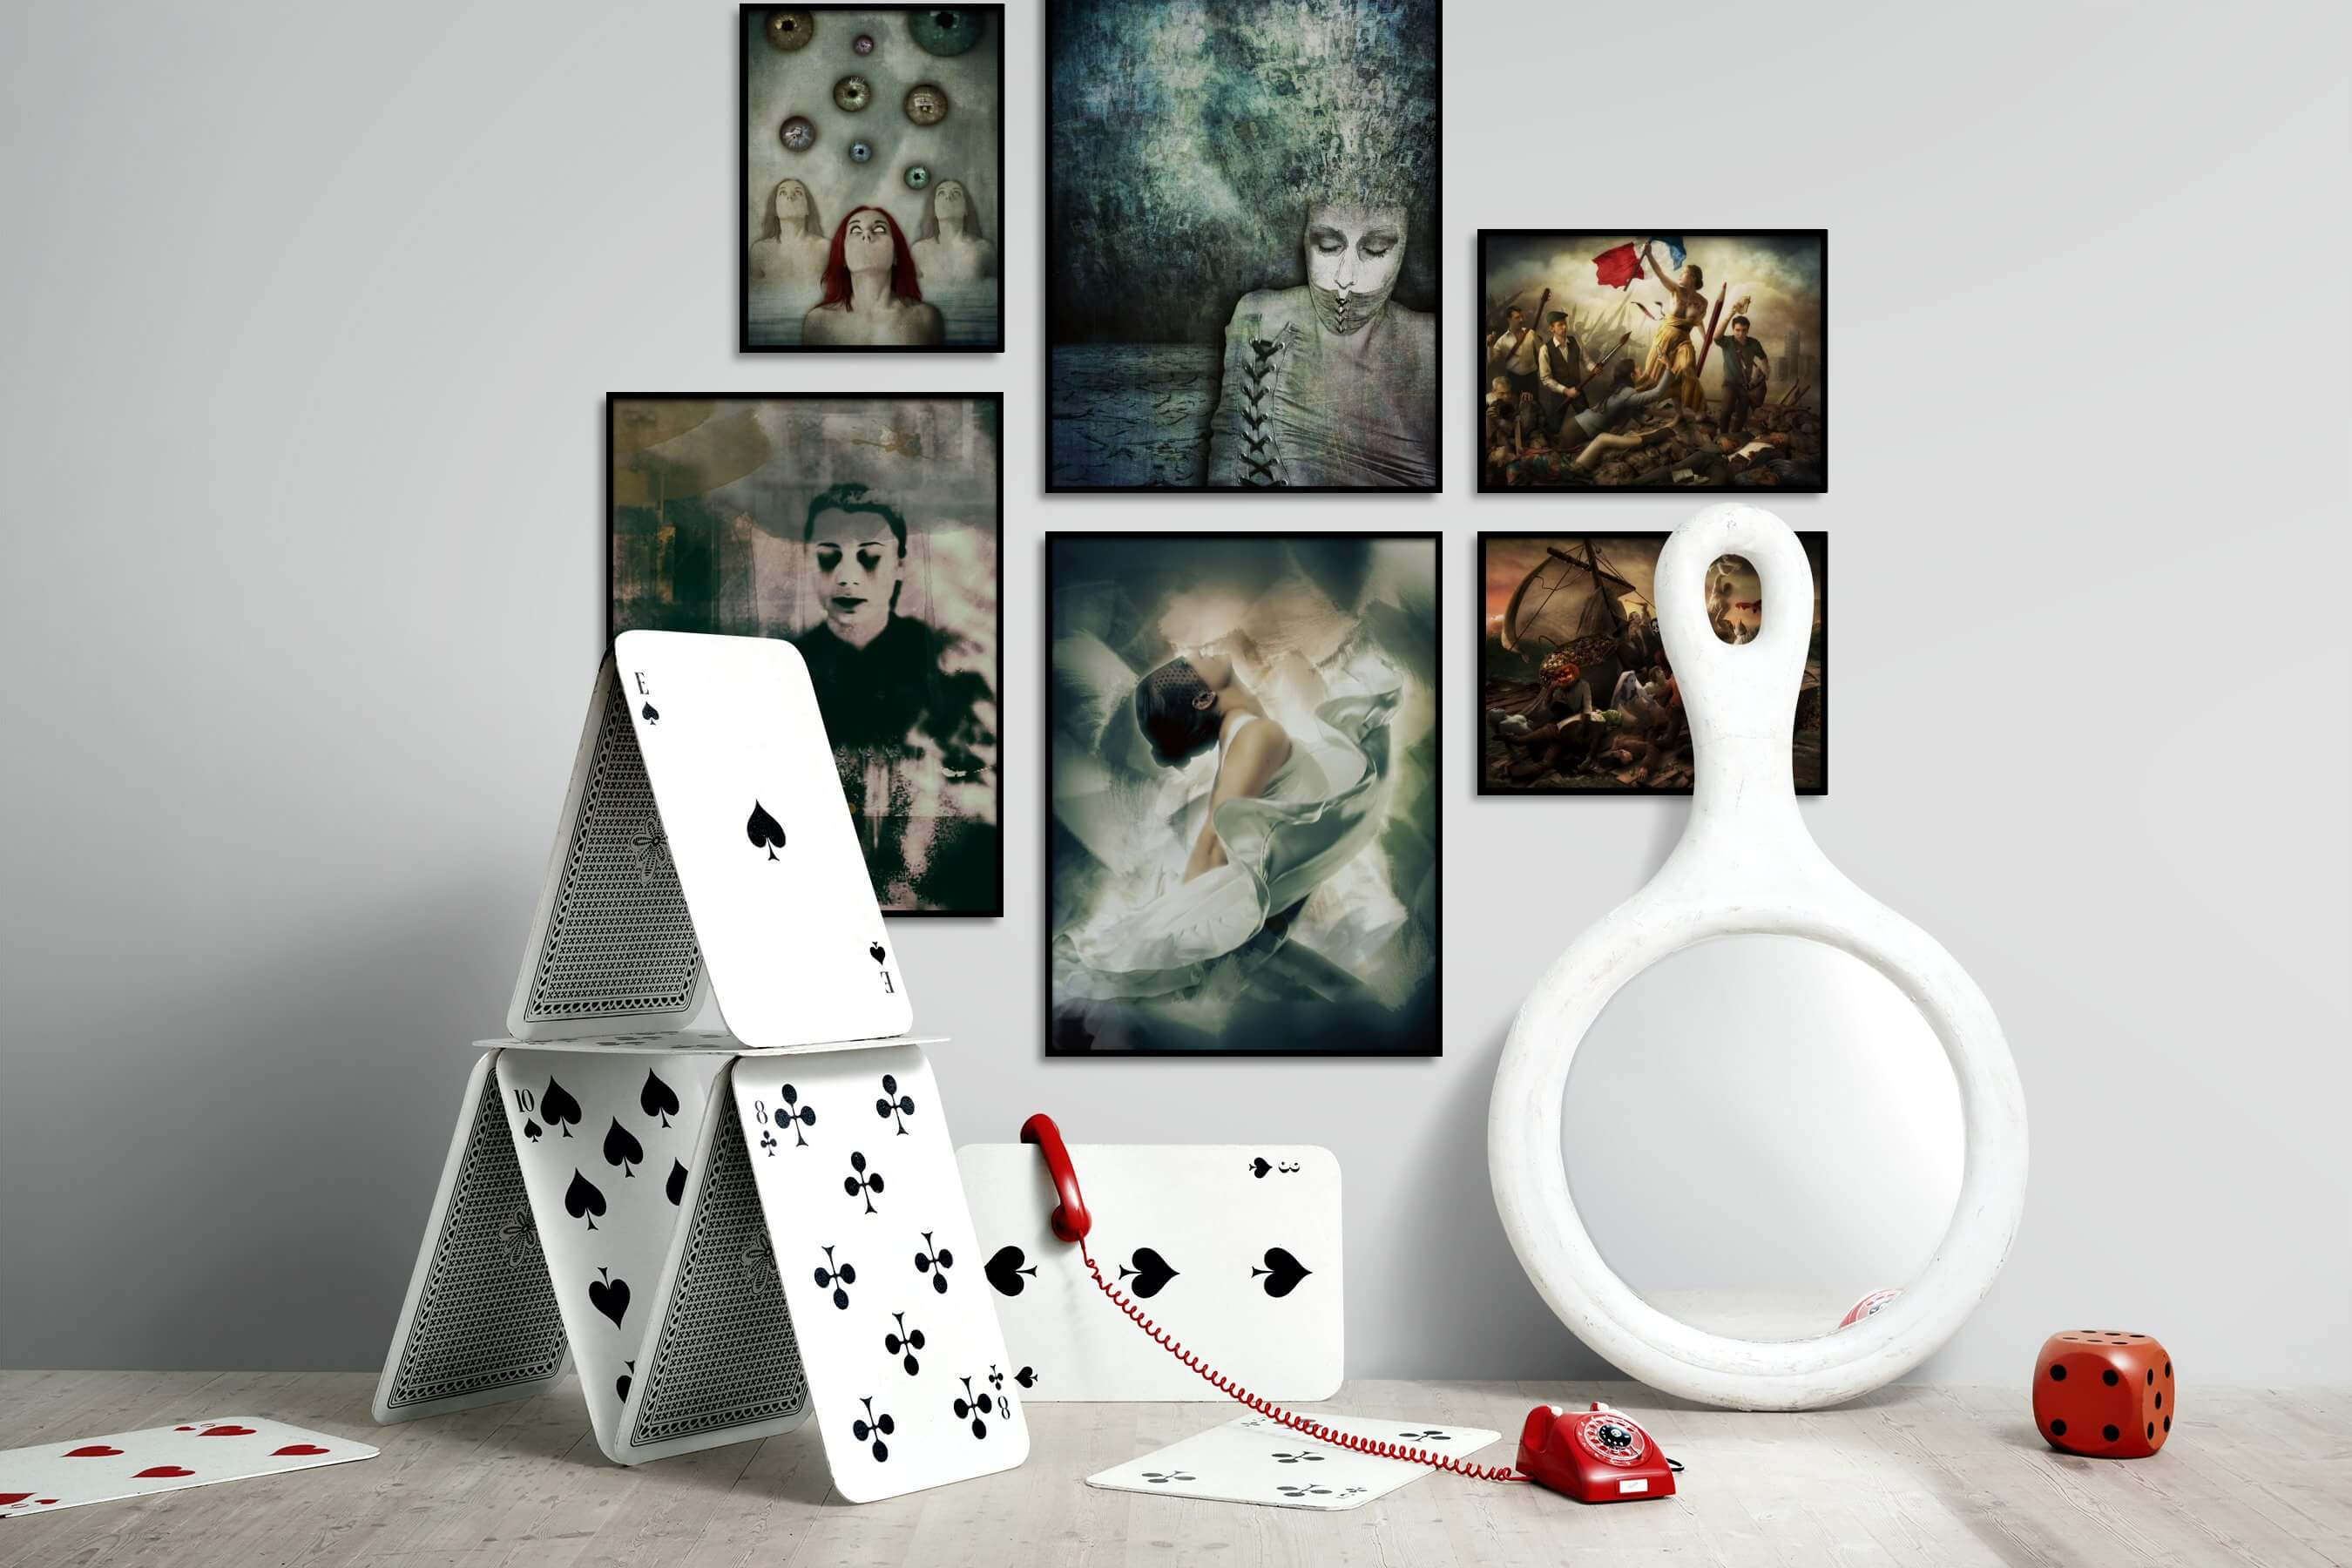 Gallery wall idea with six framed pictures arranged on a wall depicting Artsy, For the Maximalist, Fashion & Beauty, and Vintage